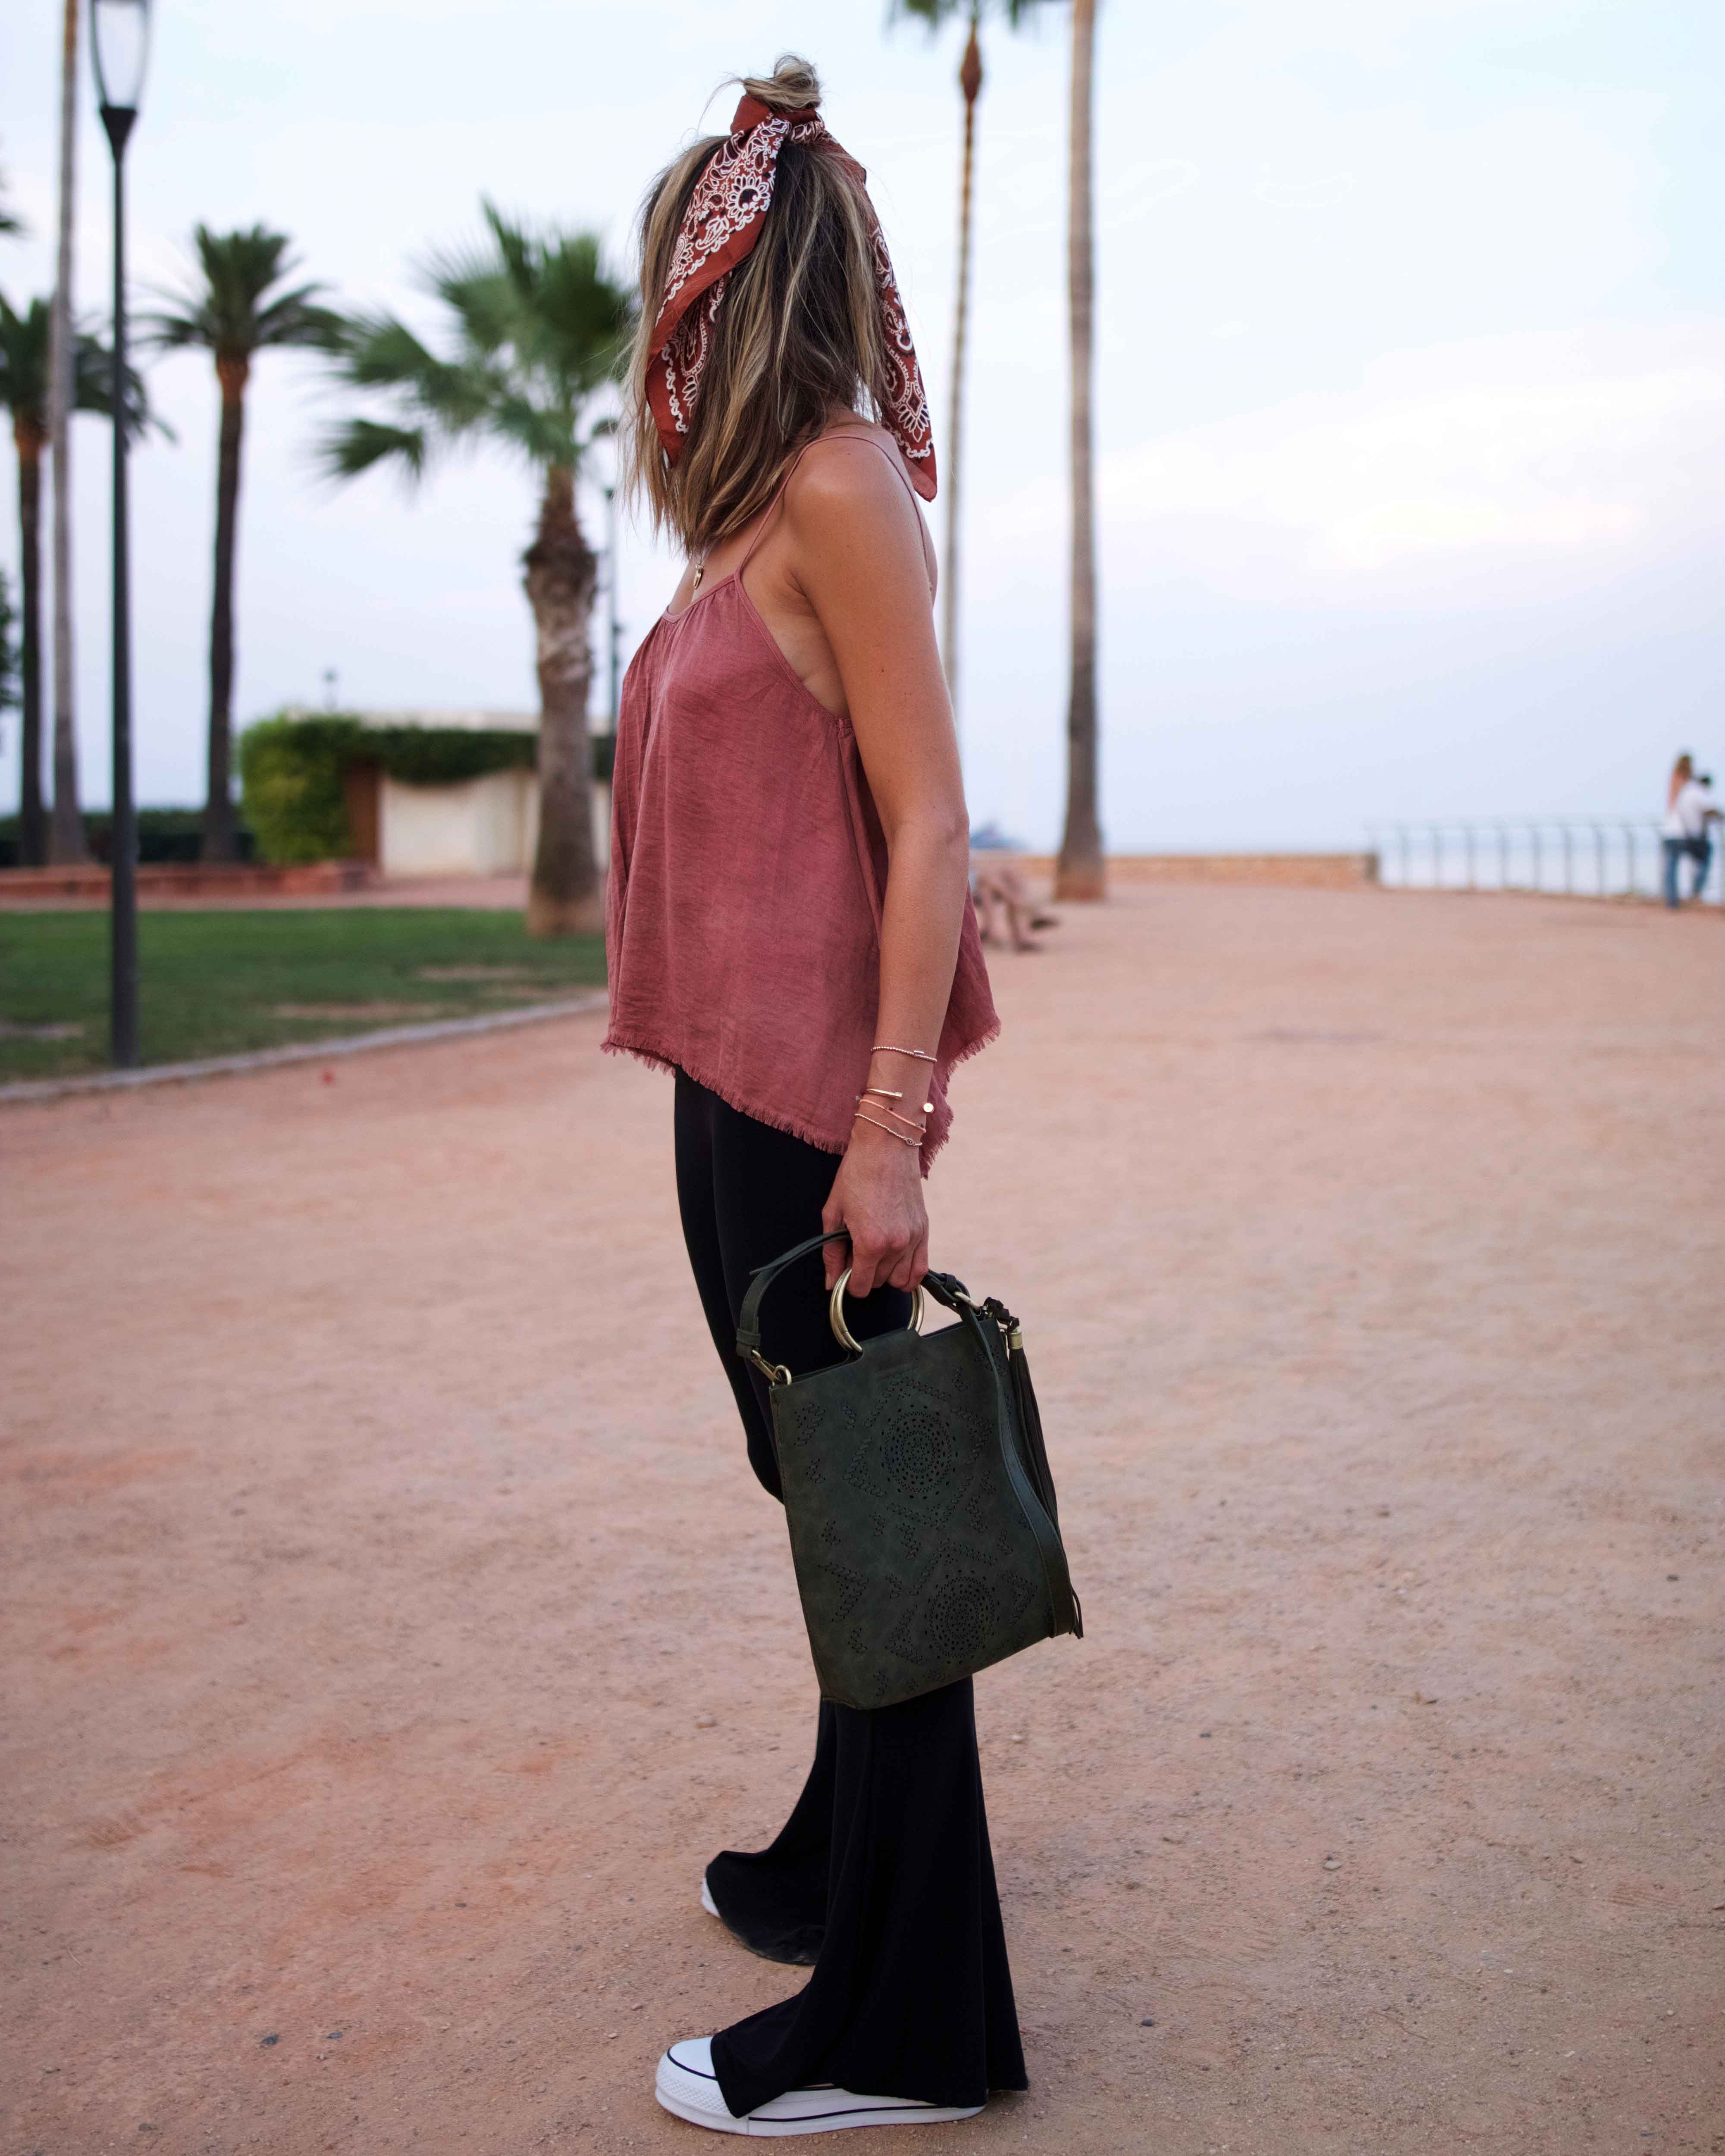 bandana anthropologie, black flare pants, hair bandana inspiration, summer look, anthropologie bag, converse rose plateforme